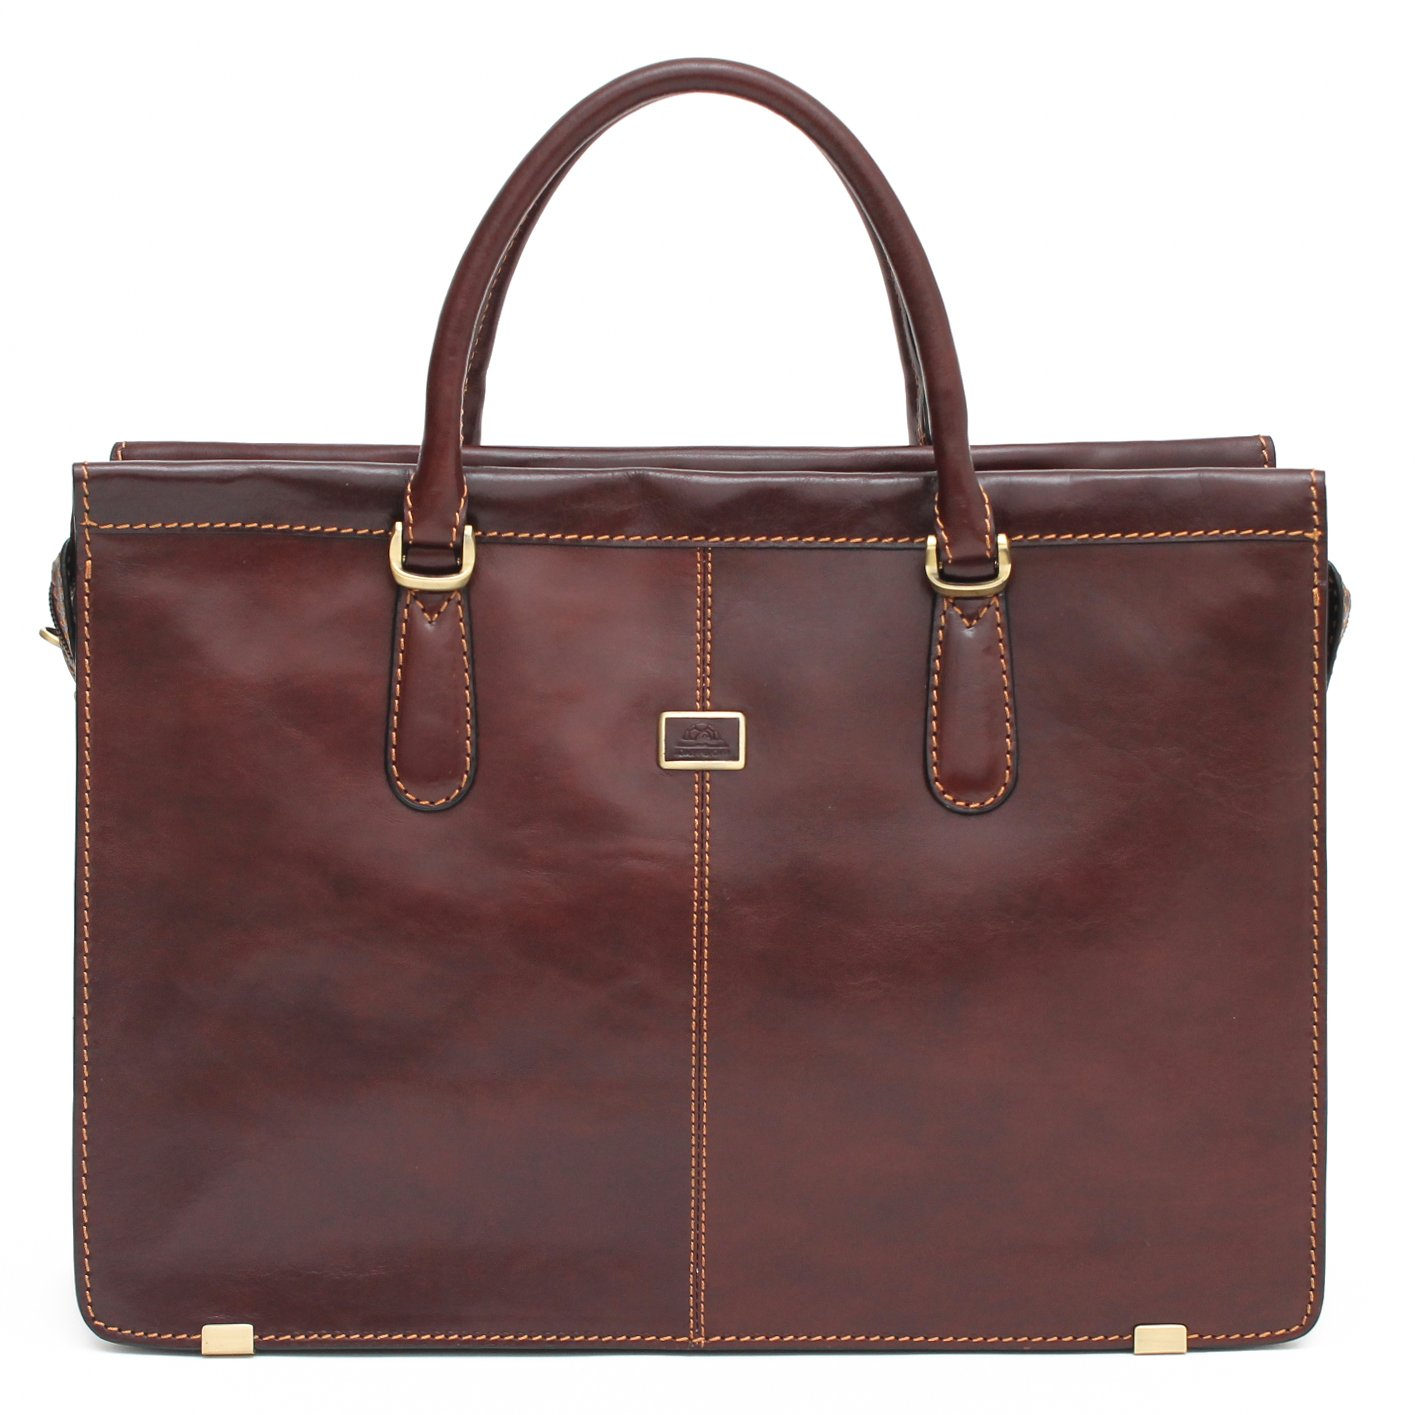 Tony Perotti Womens Italian Bull Leather [Personalized Initials Embossing] Bella Fellini Double Compartment Leather Laptop Briefcase in Brown by Tony Perotti